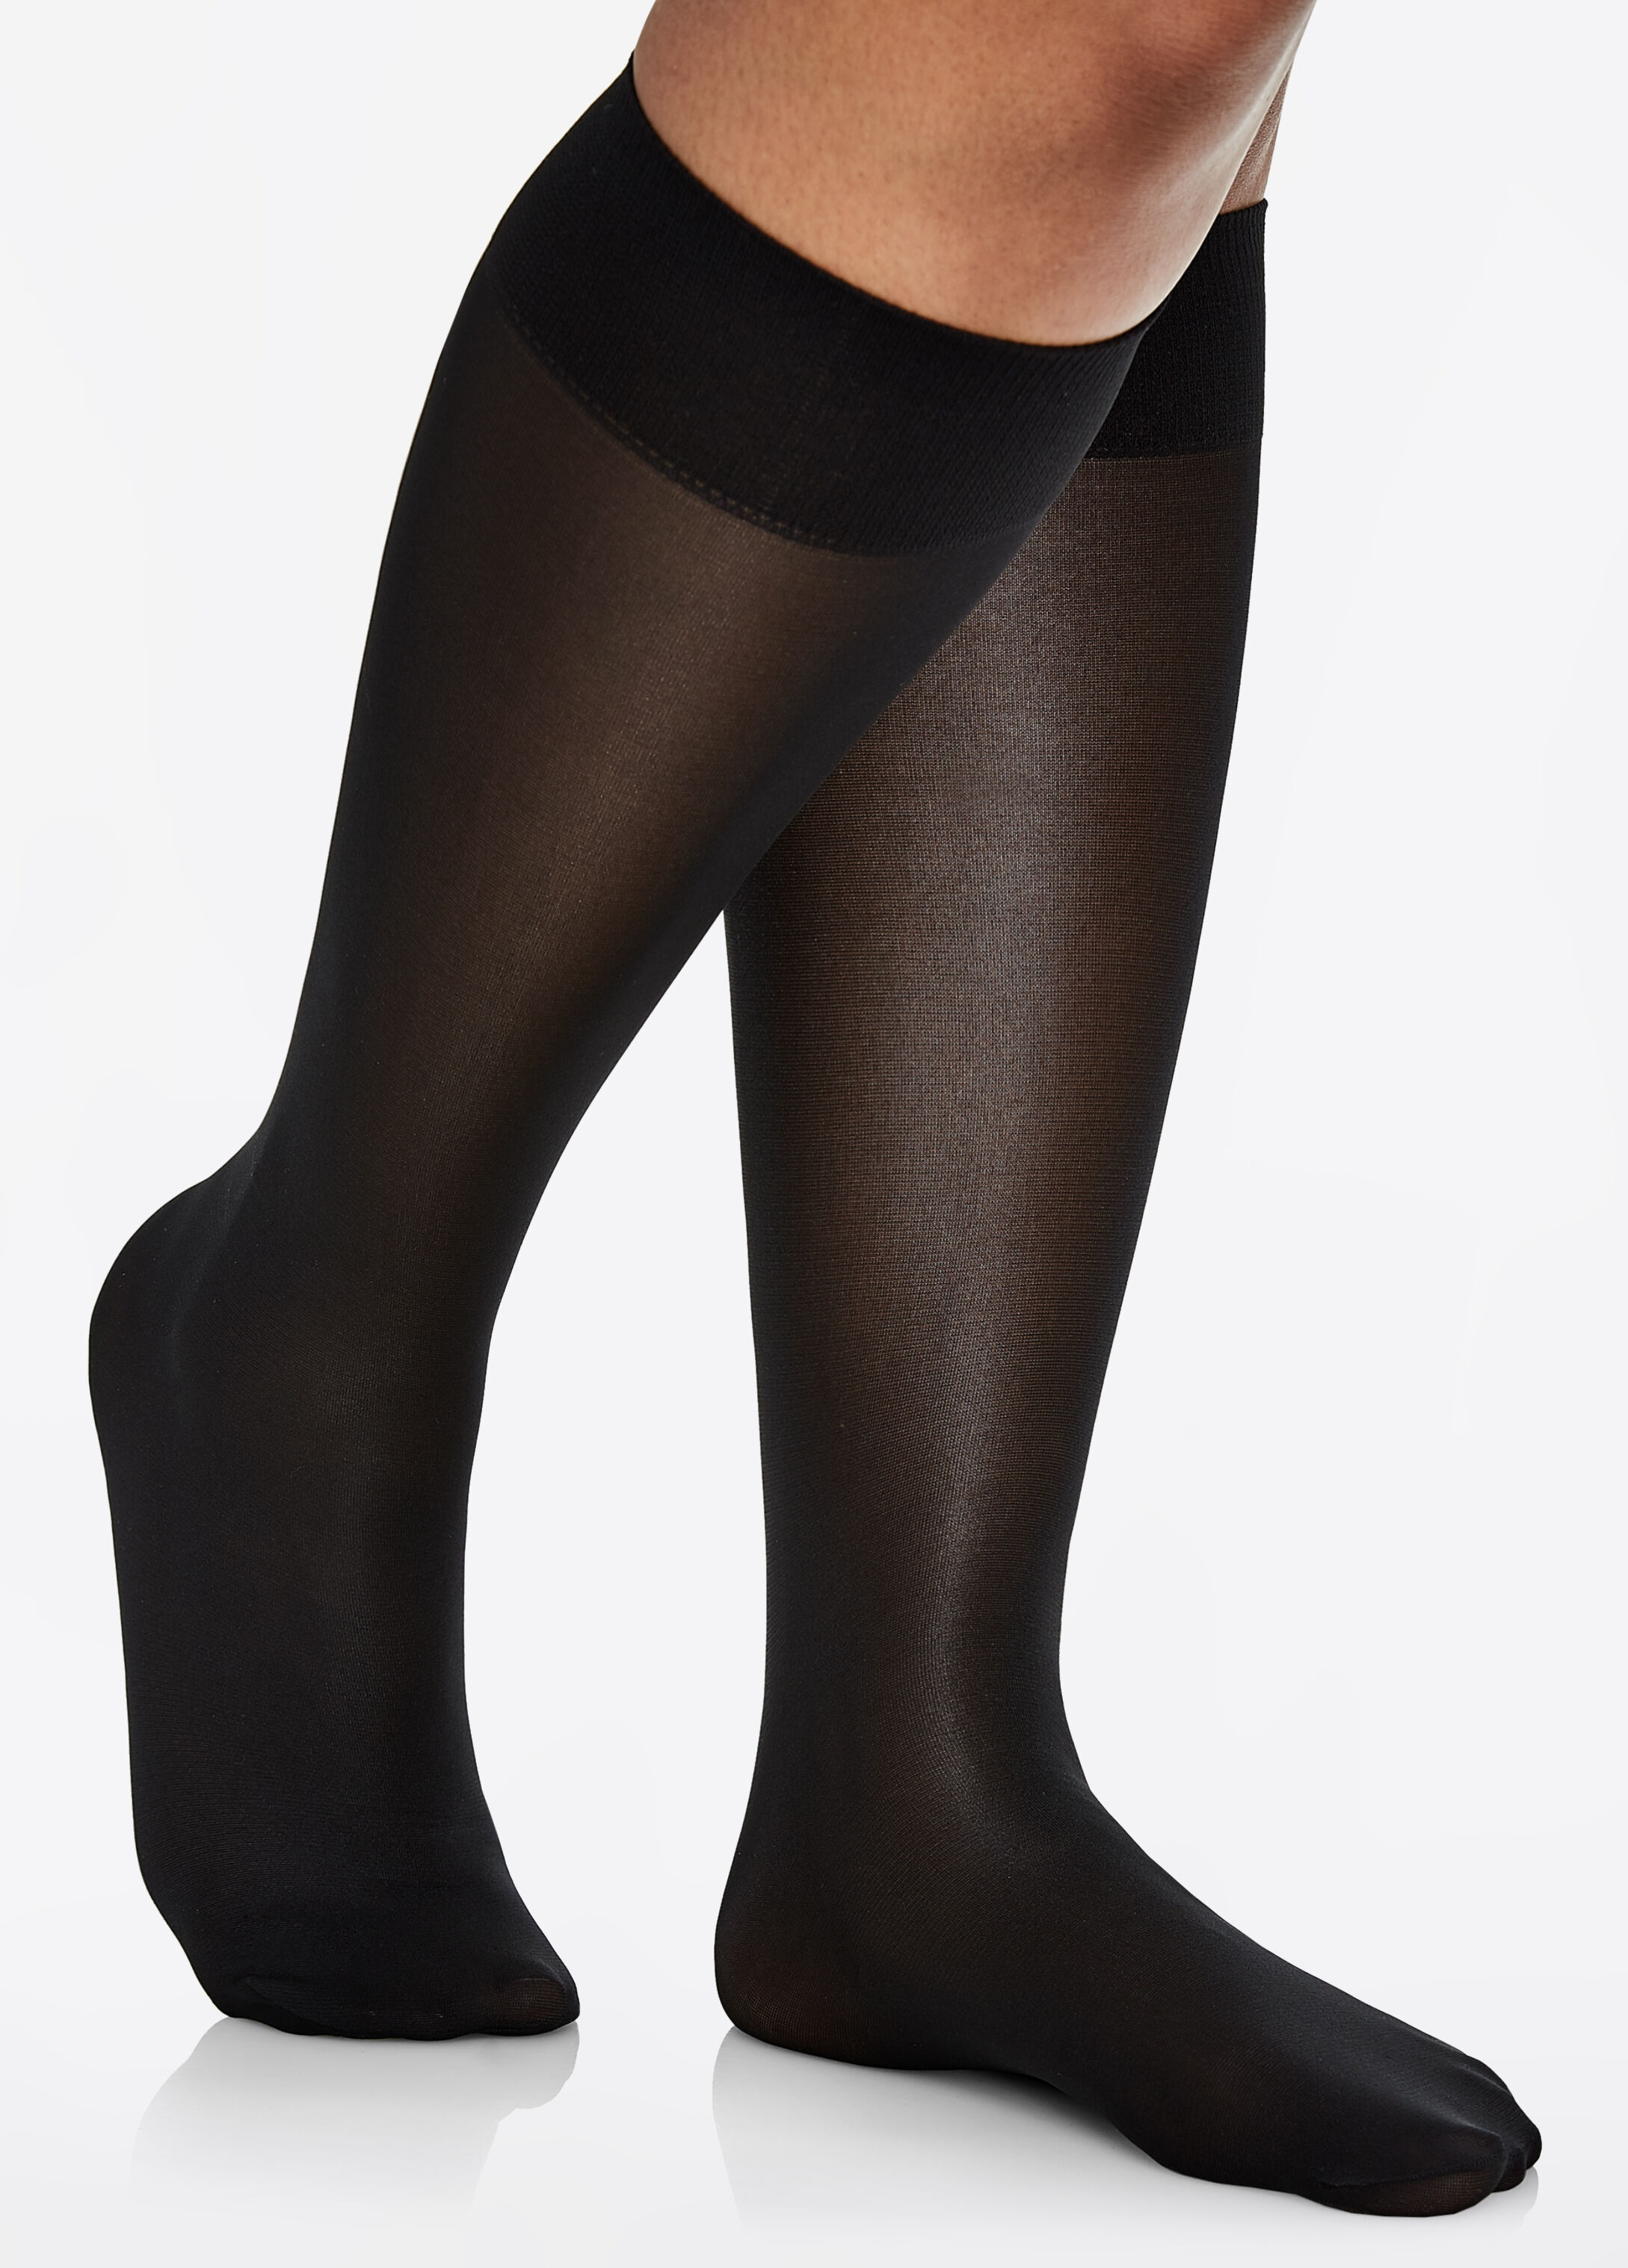 Berkshire Opaque Support Graduated Compression Trouser Sock